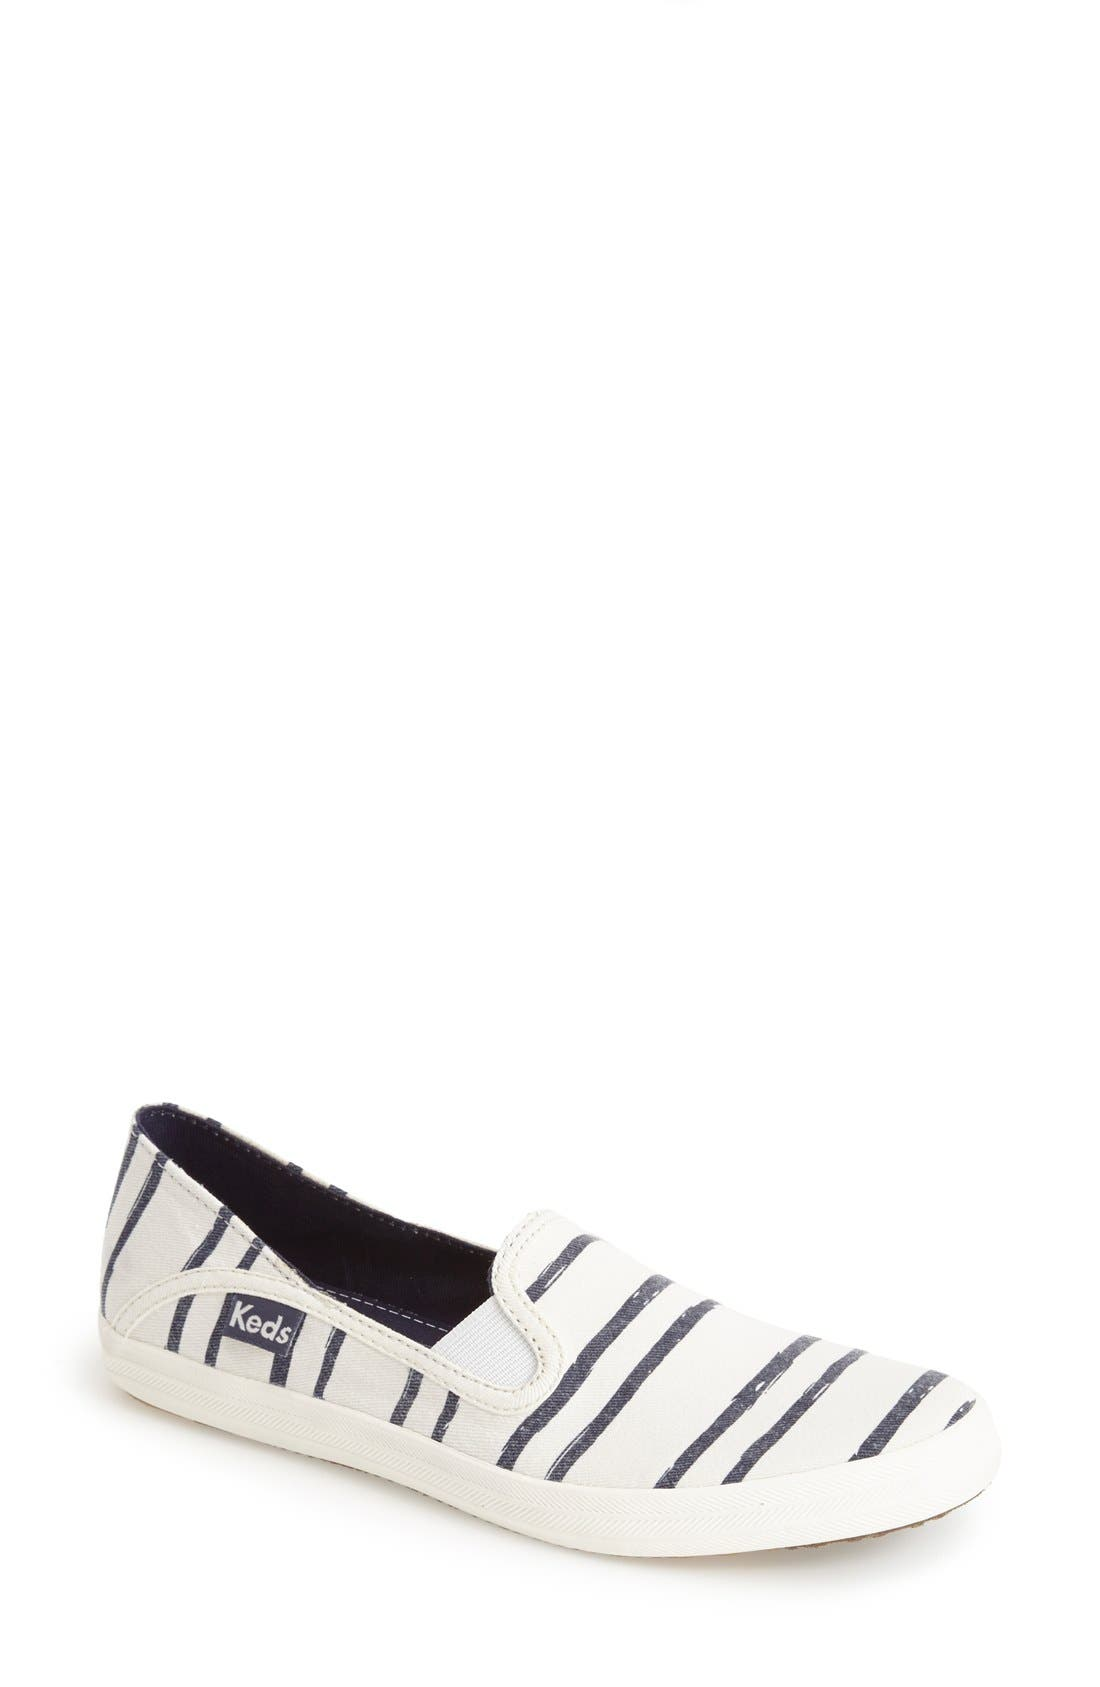 Main Image - Keds® 'Crashback - Washed Beach Stripe' Slip-On Sneaker (Women)